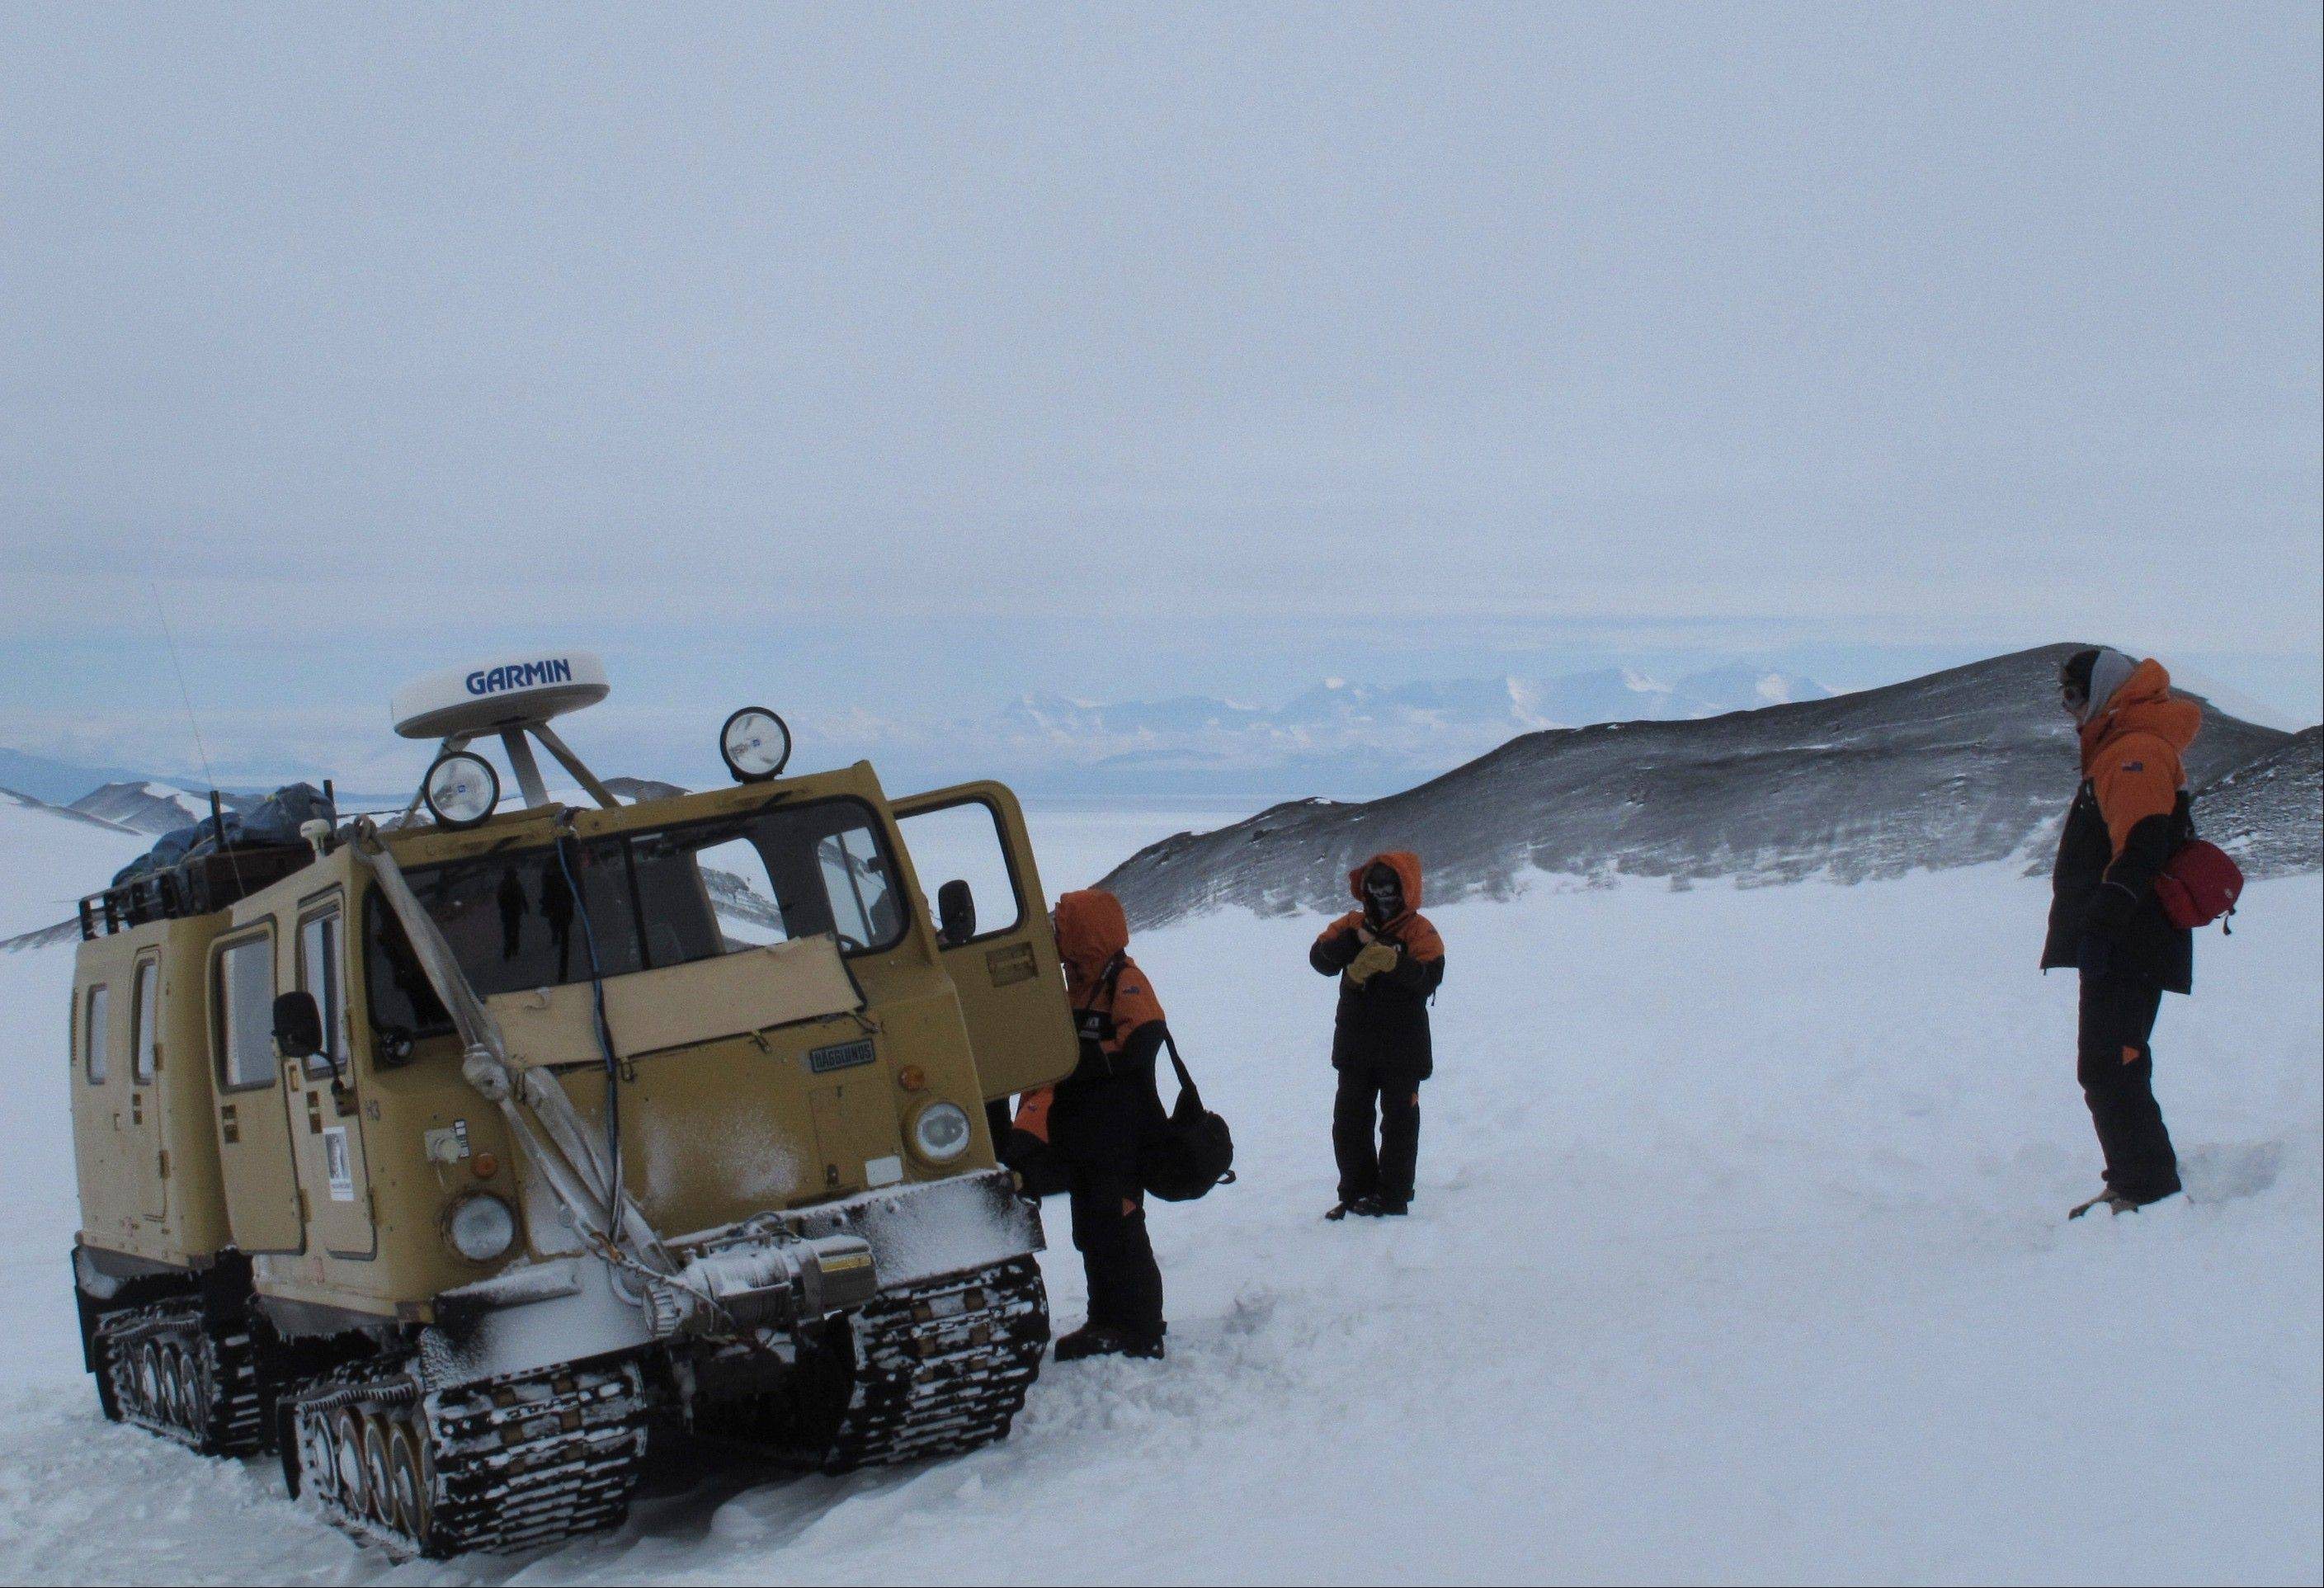 Sightseers board an over-snow vehicle on Hut Point Peninsula of Ross Island in Antarctica.